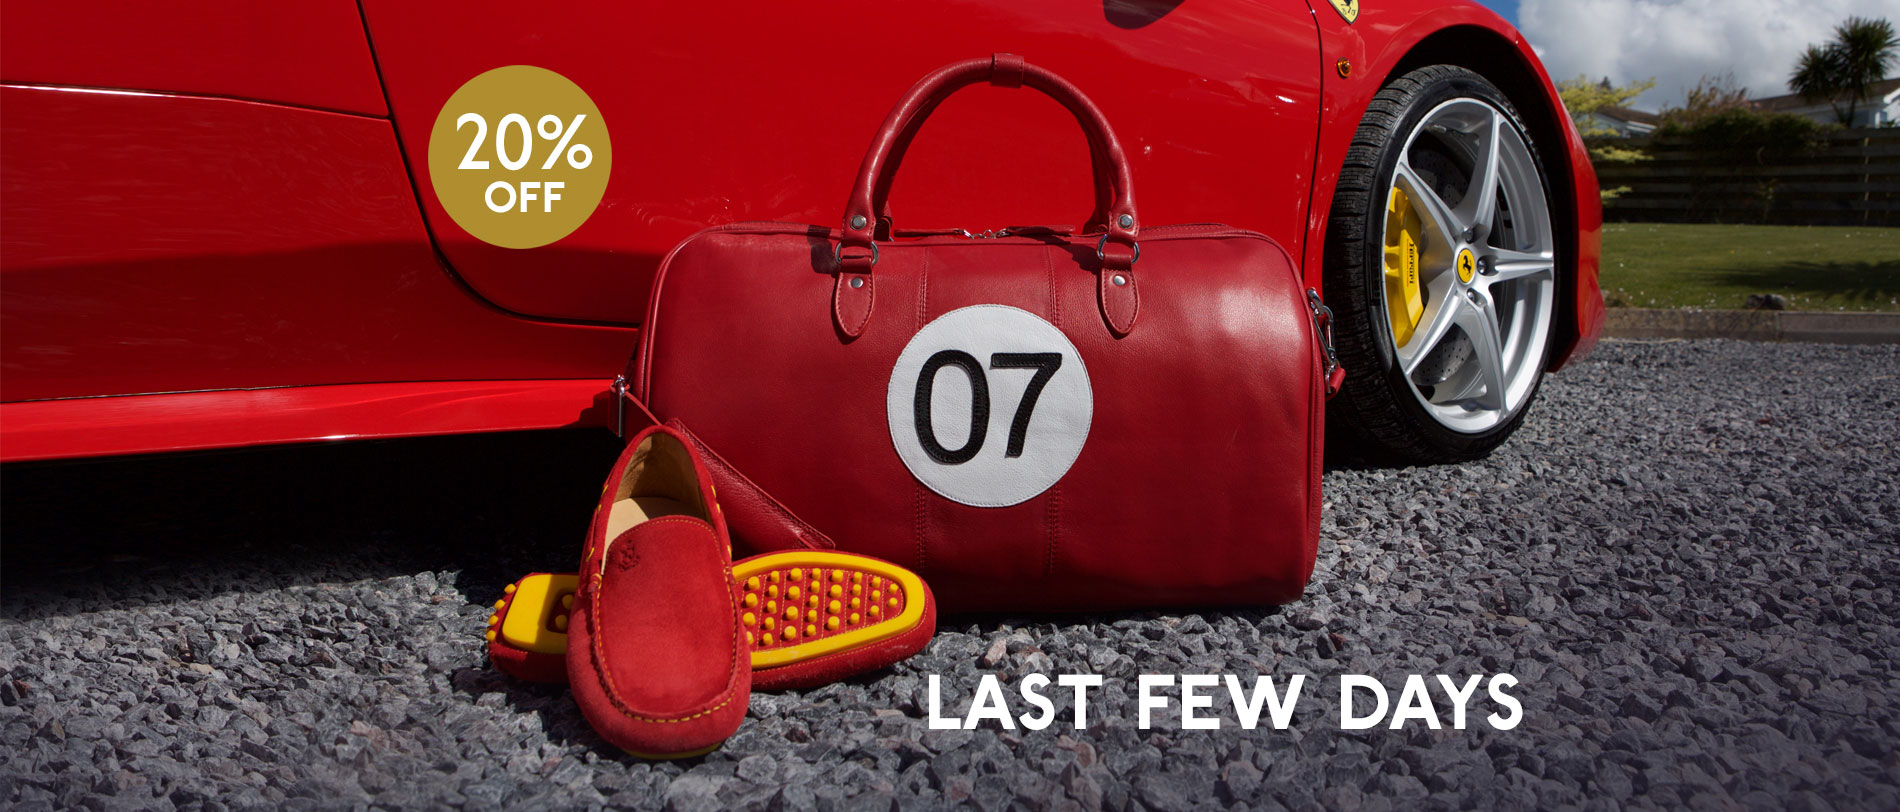 Last few days to save 20% on selected moccs and bags